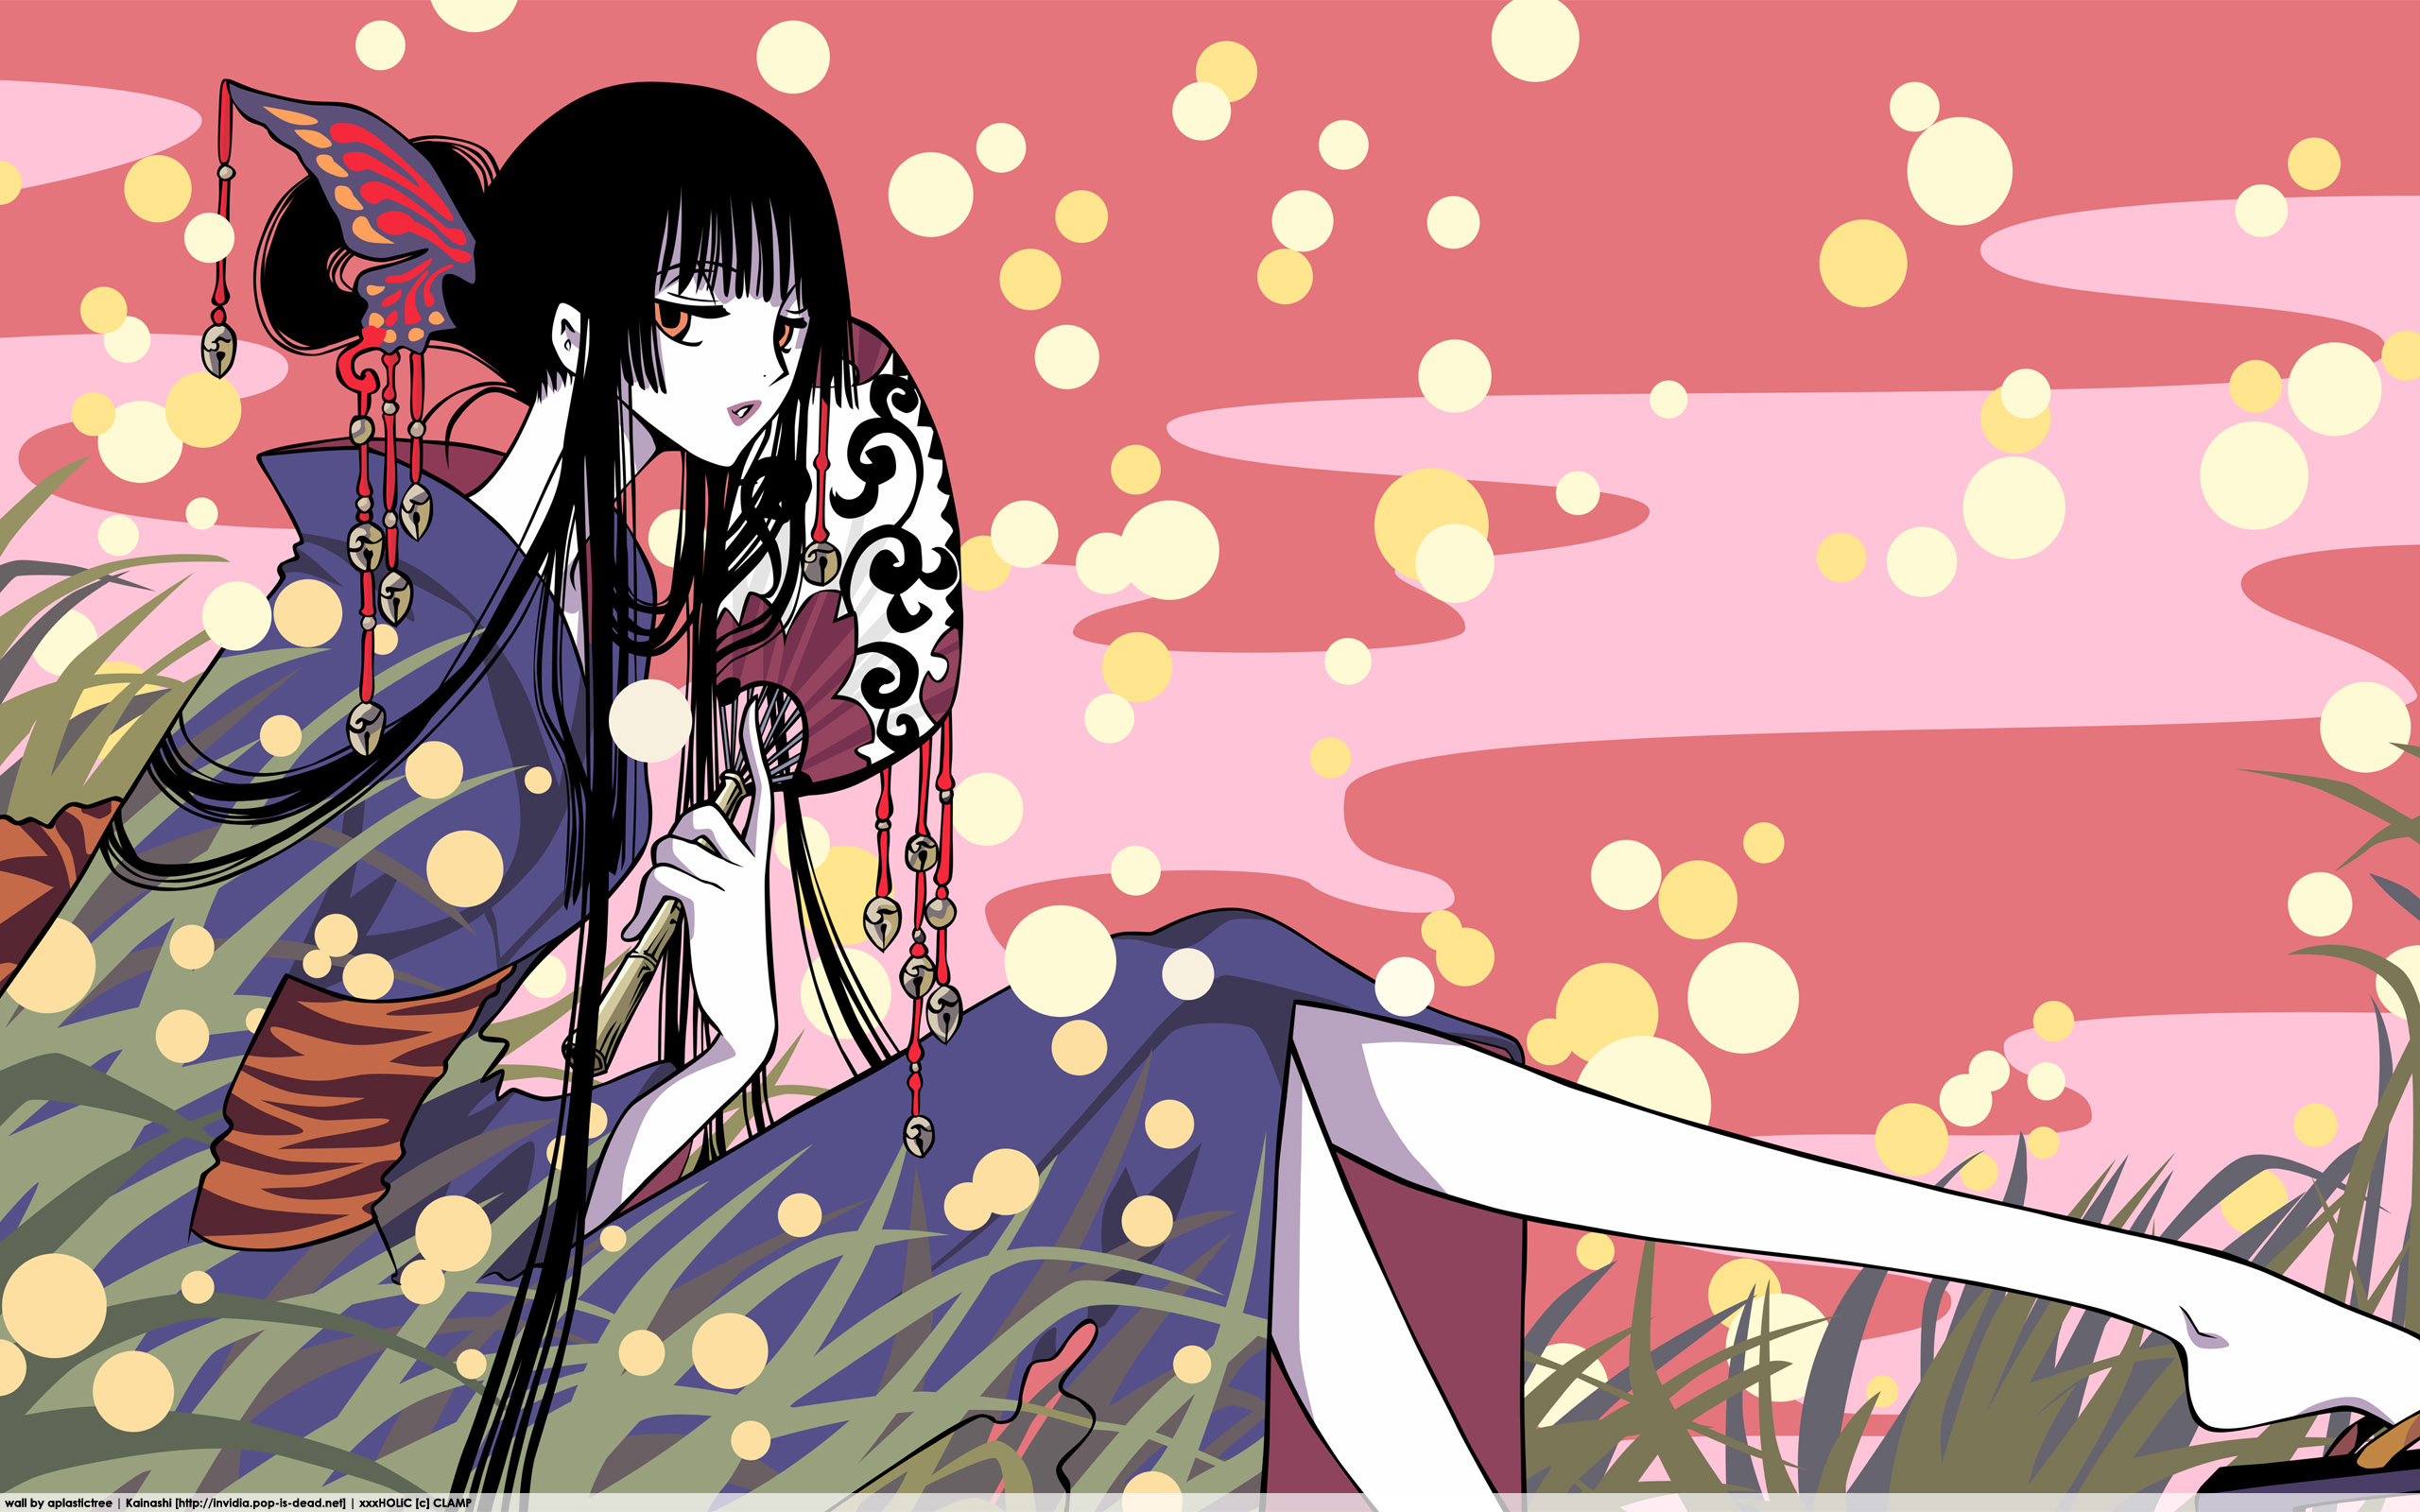 Xxxholic manga anime hd wallpaper 01 imagez only - Wallpaper manga anime ...